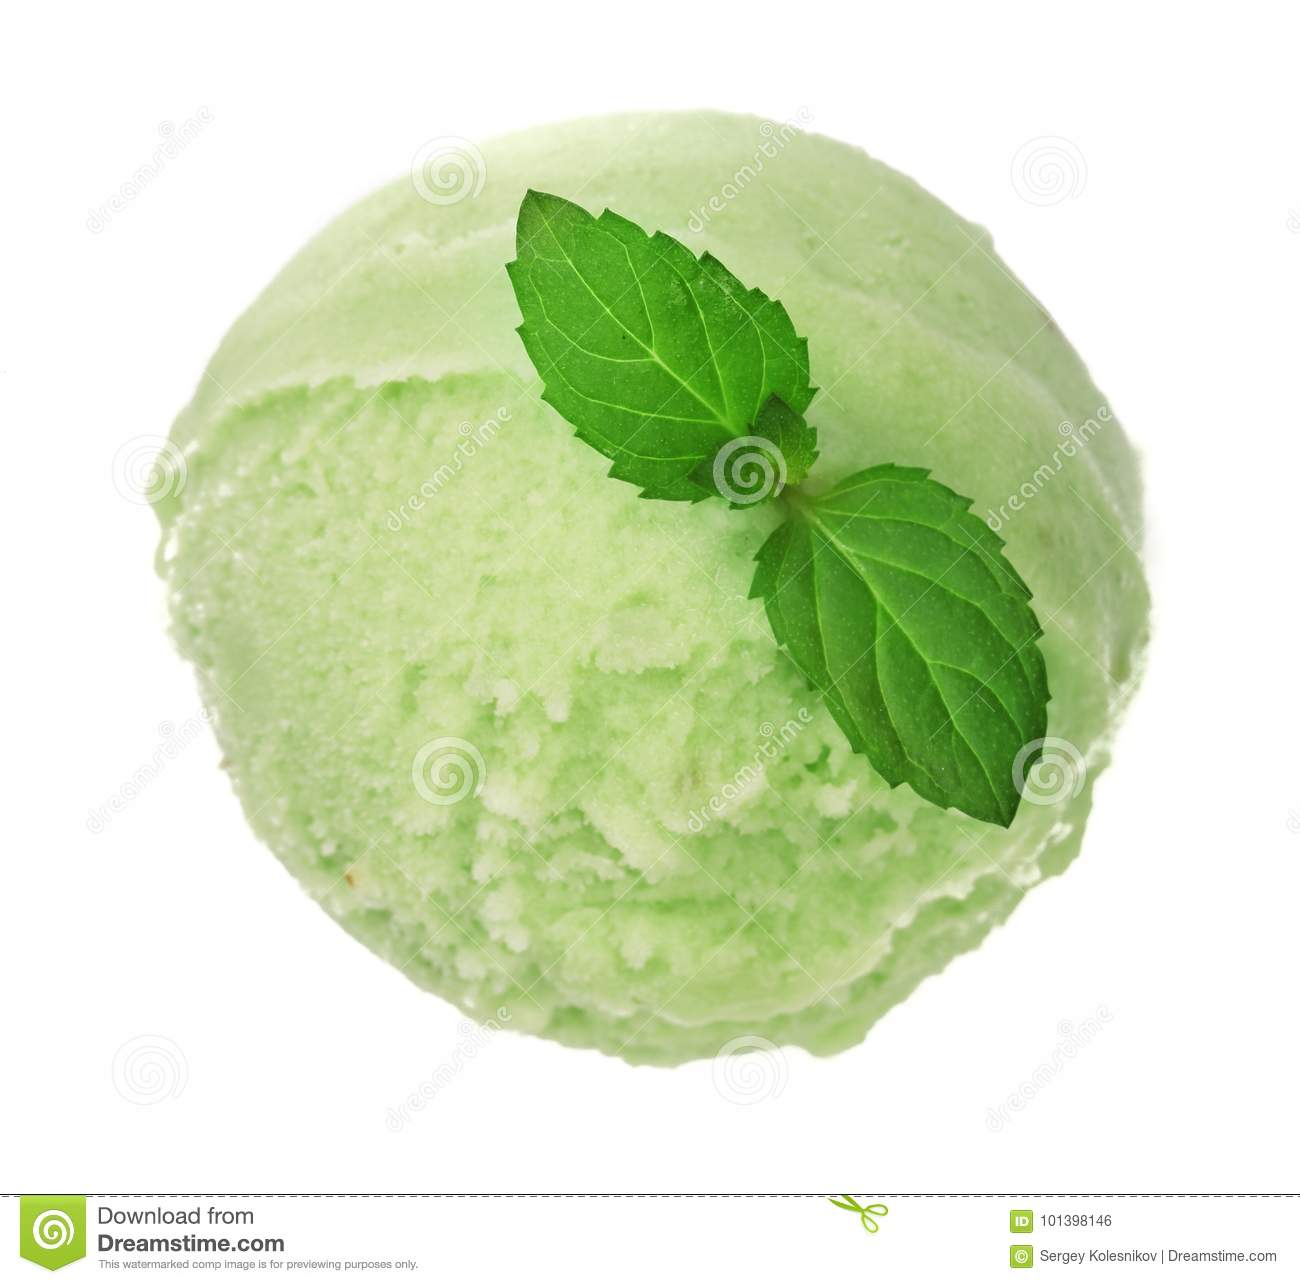 Green tea or pistachio ice cream ball with a mint leaf isolated on white background, top view